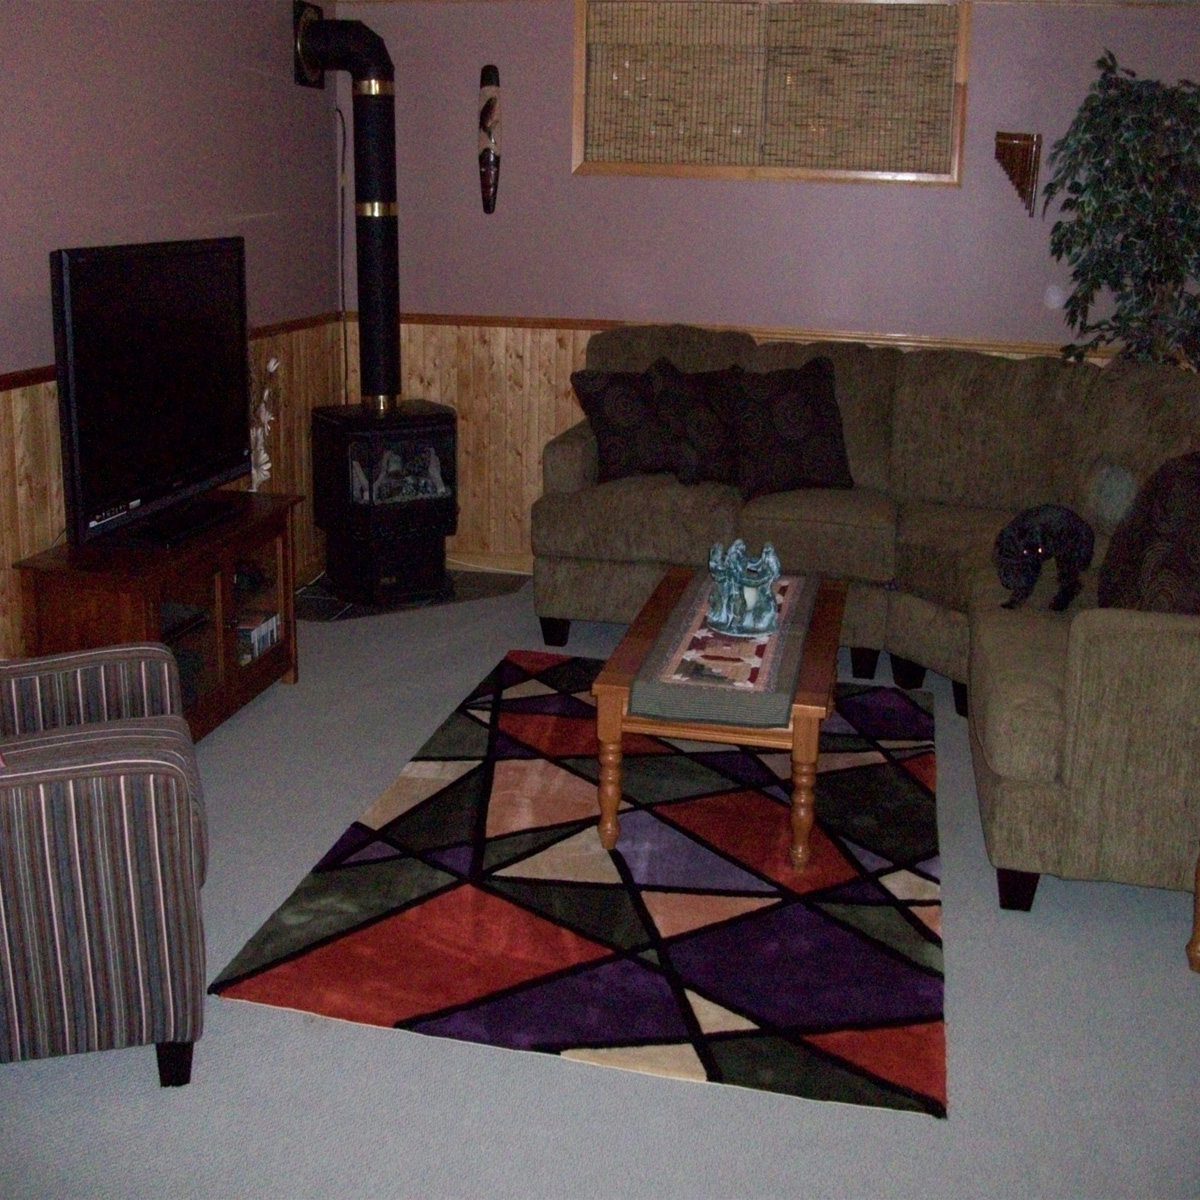 Home Staging by Cleaner Living - Picture 1 Before